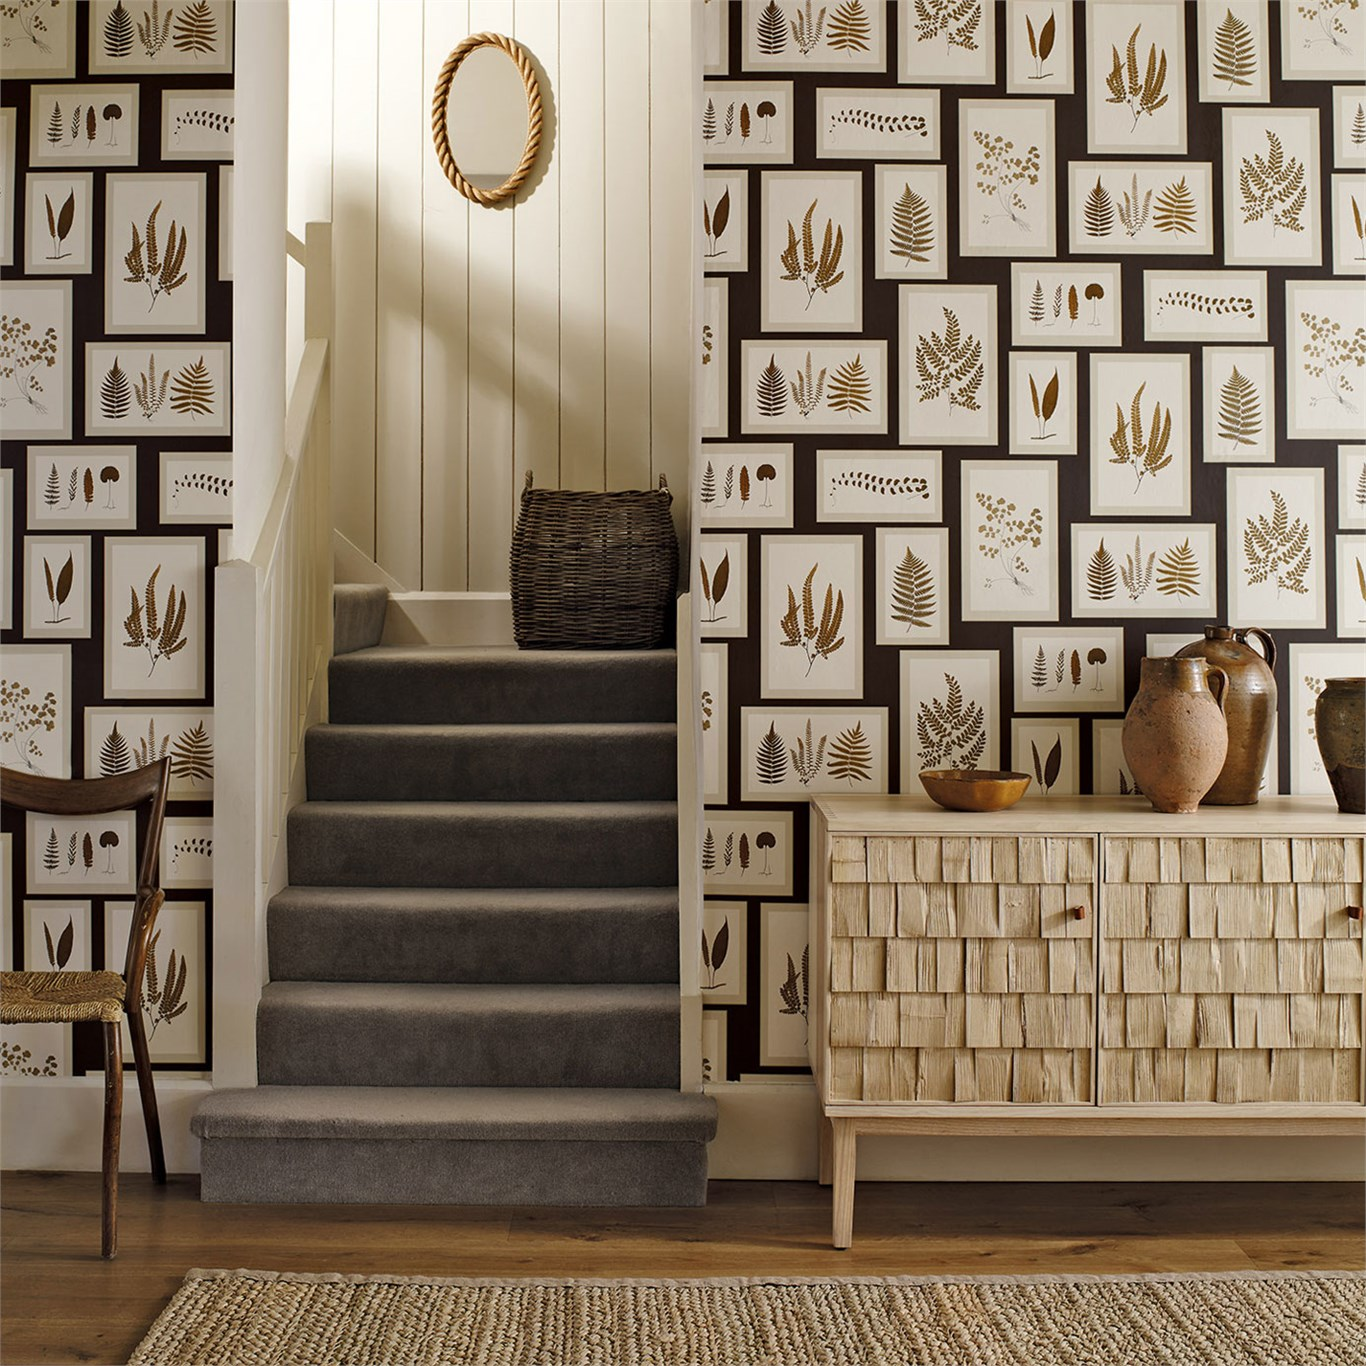 Fern Gallery Wallpaper From The Woodland Walk Collection By Sanderson